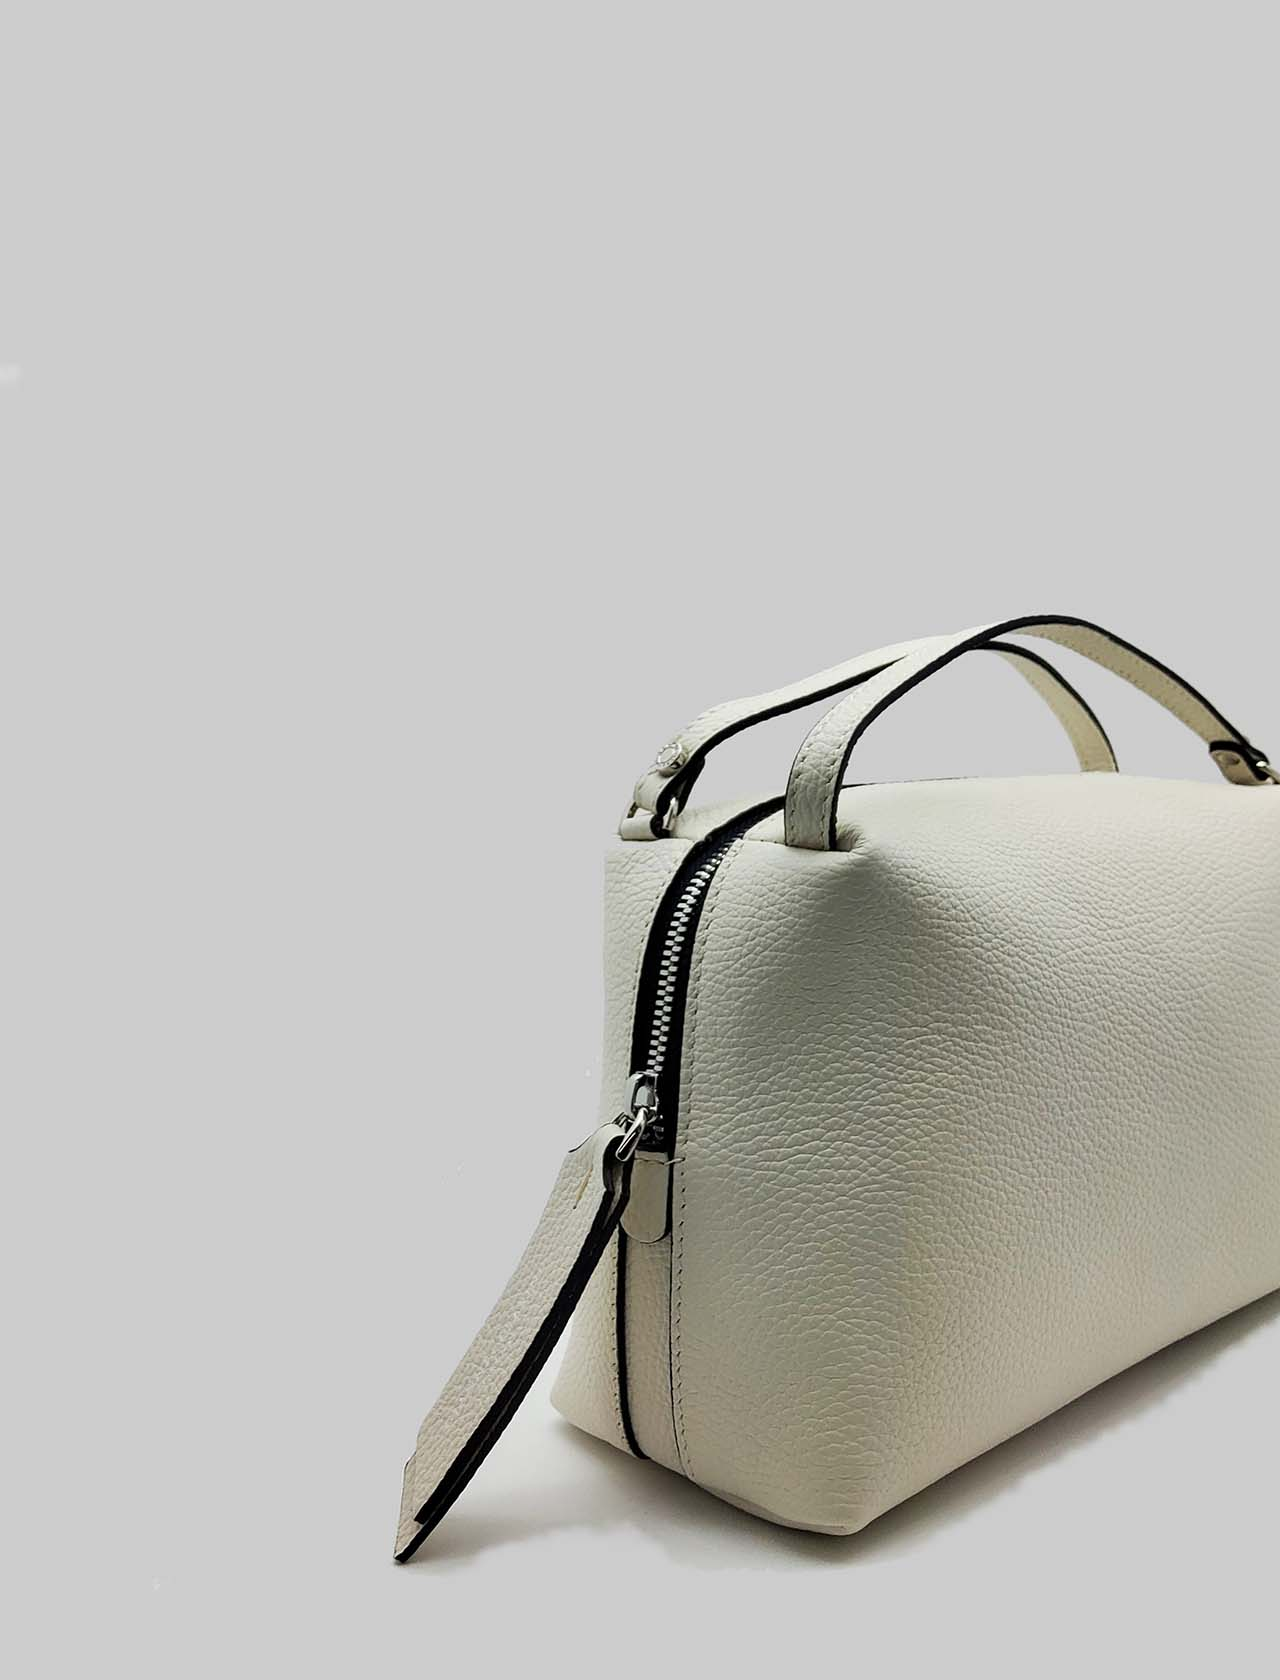 Alifa Woman Bag in Cream Leather with Double Hand Handle and Removable Shoulder Strap Gianni Chiarini | Bags and backpacks | BS81483089